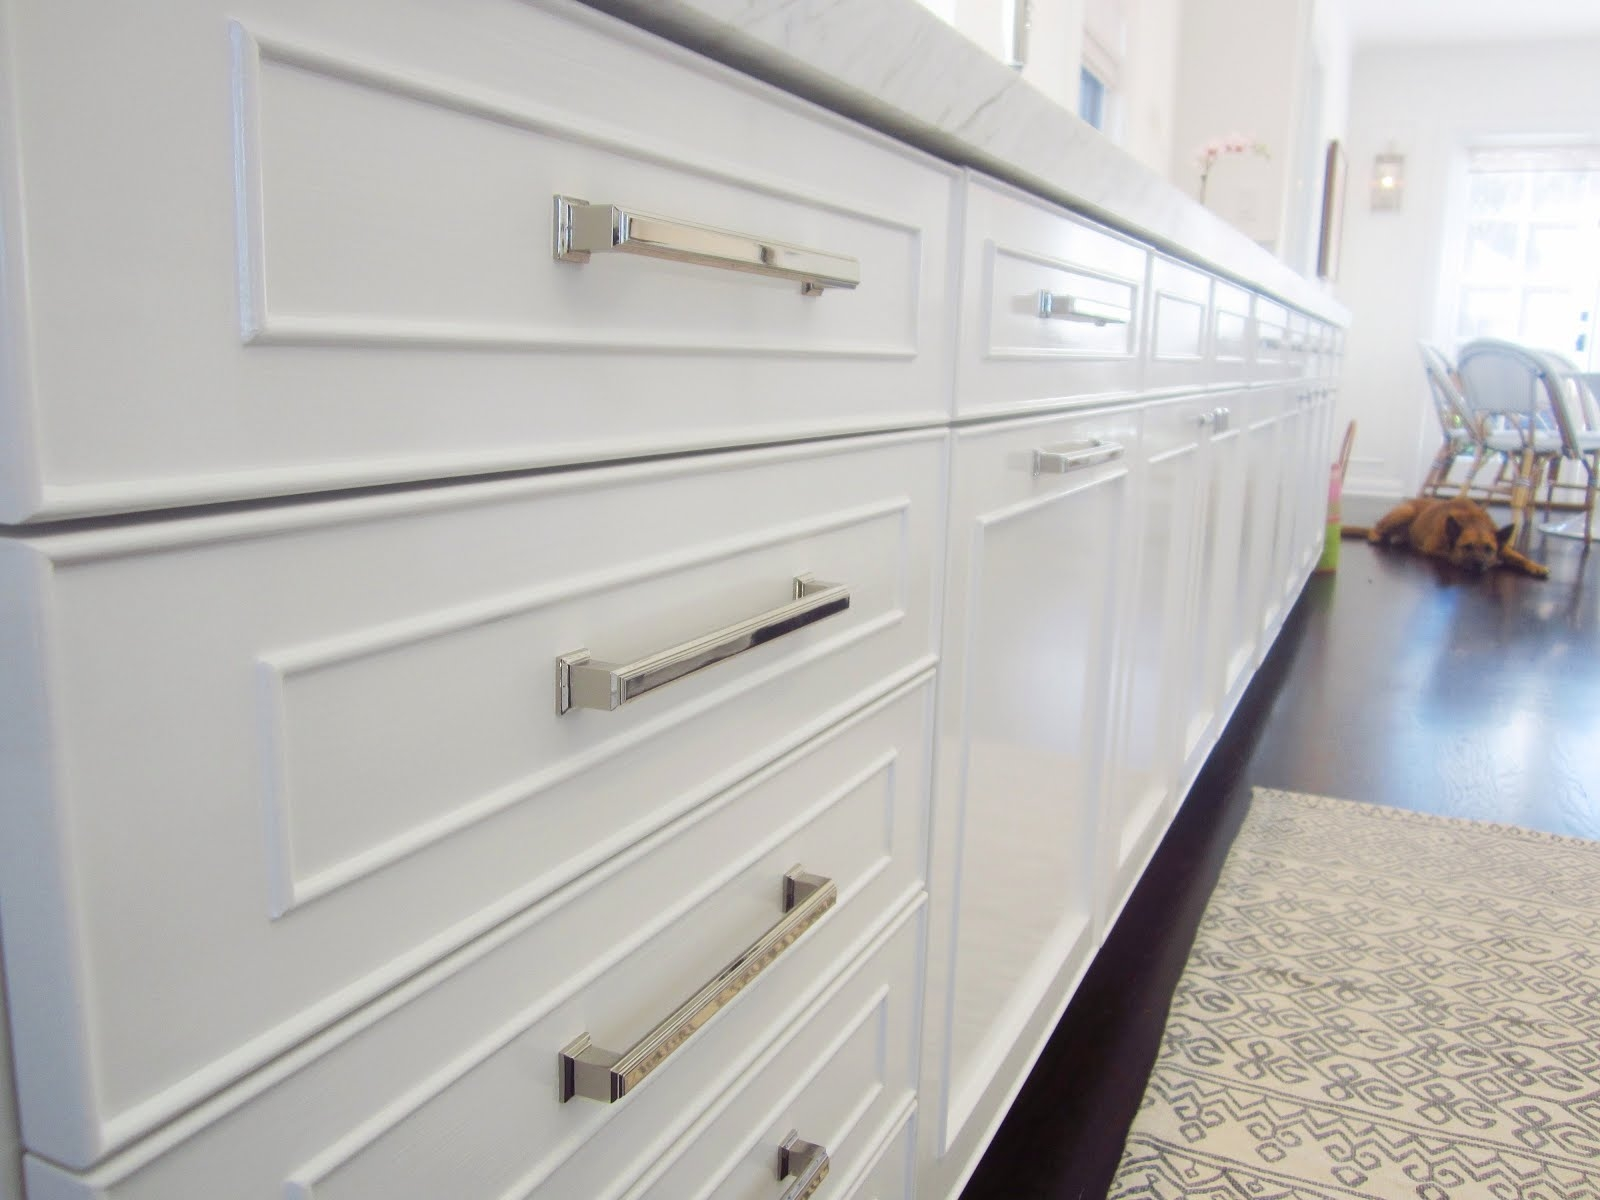 Contemporary Kitchen Cabinet Knobs And Pulls